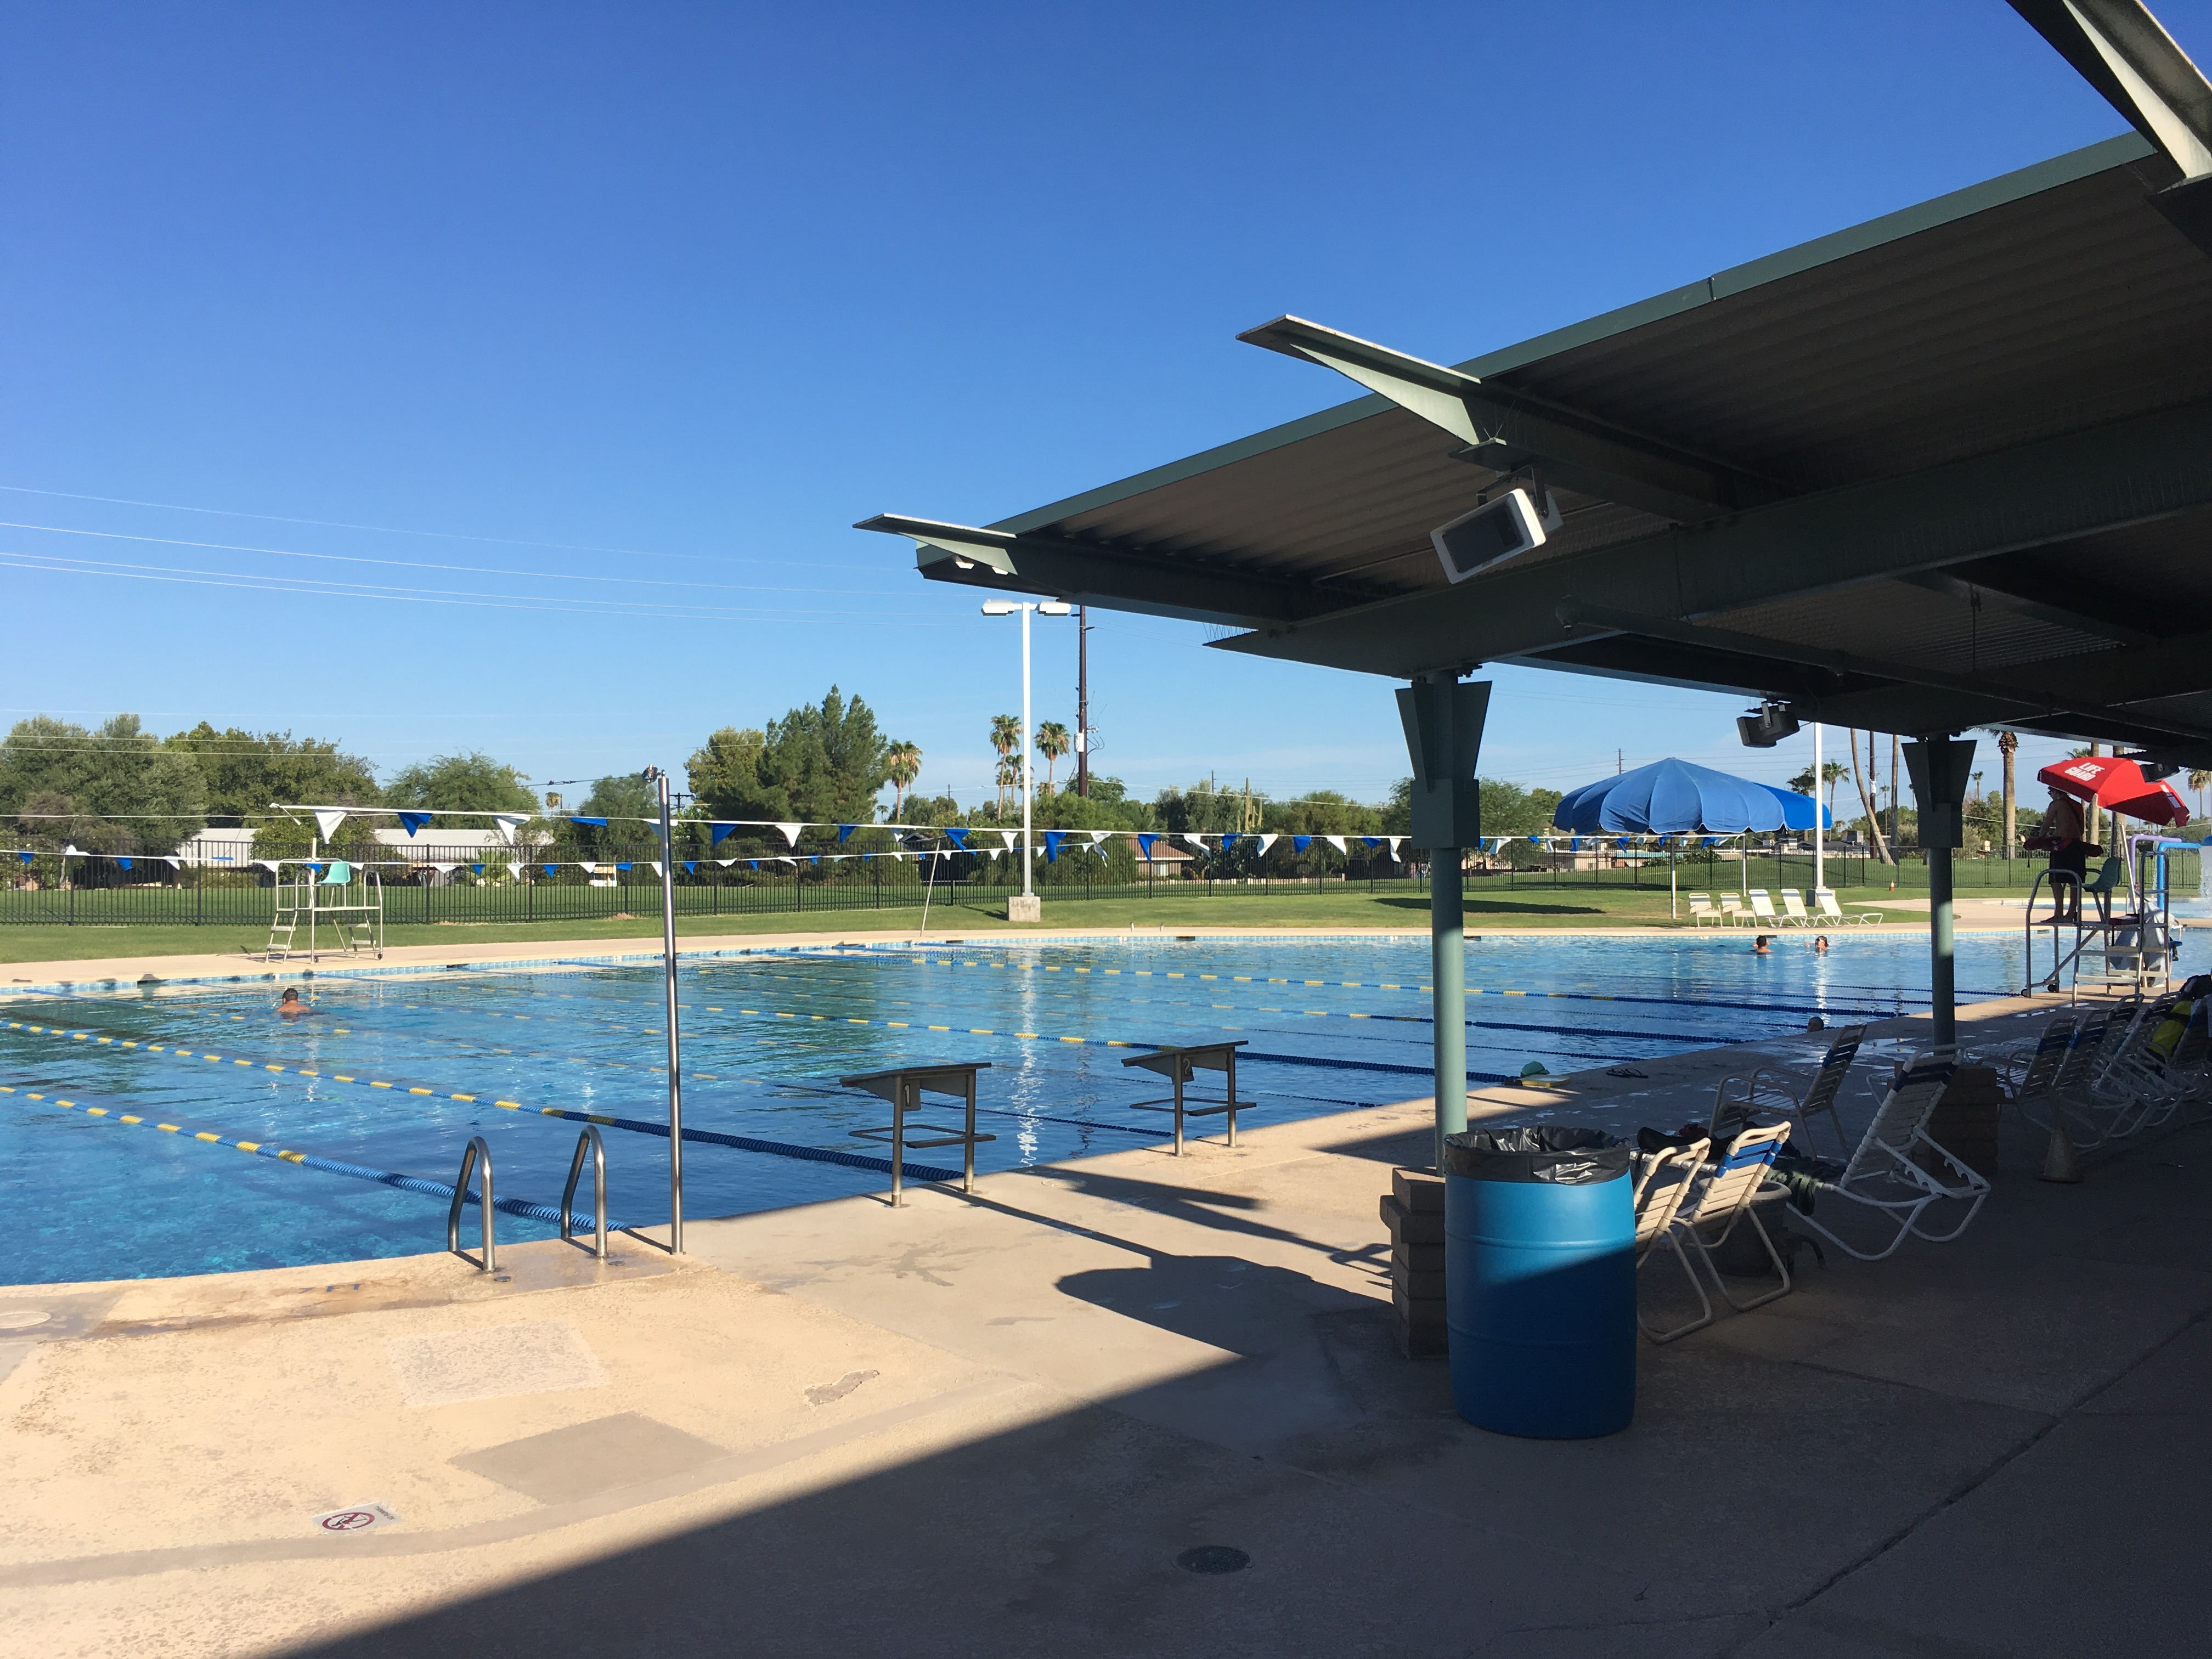 0308 - Chaparral Pool Scottsdale